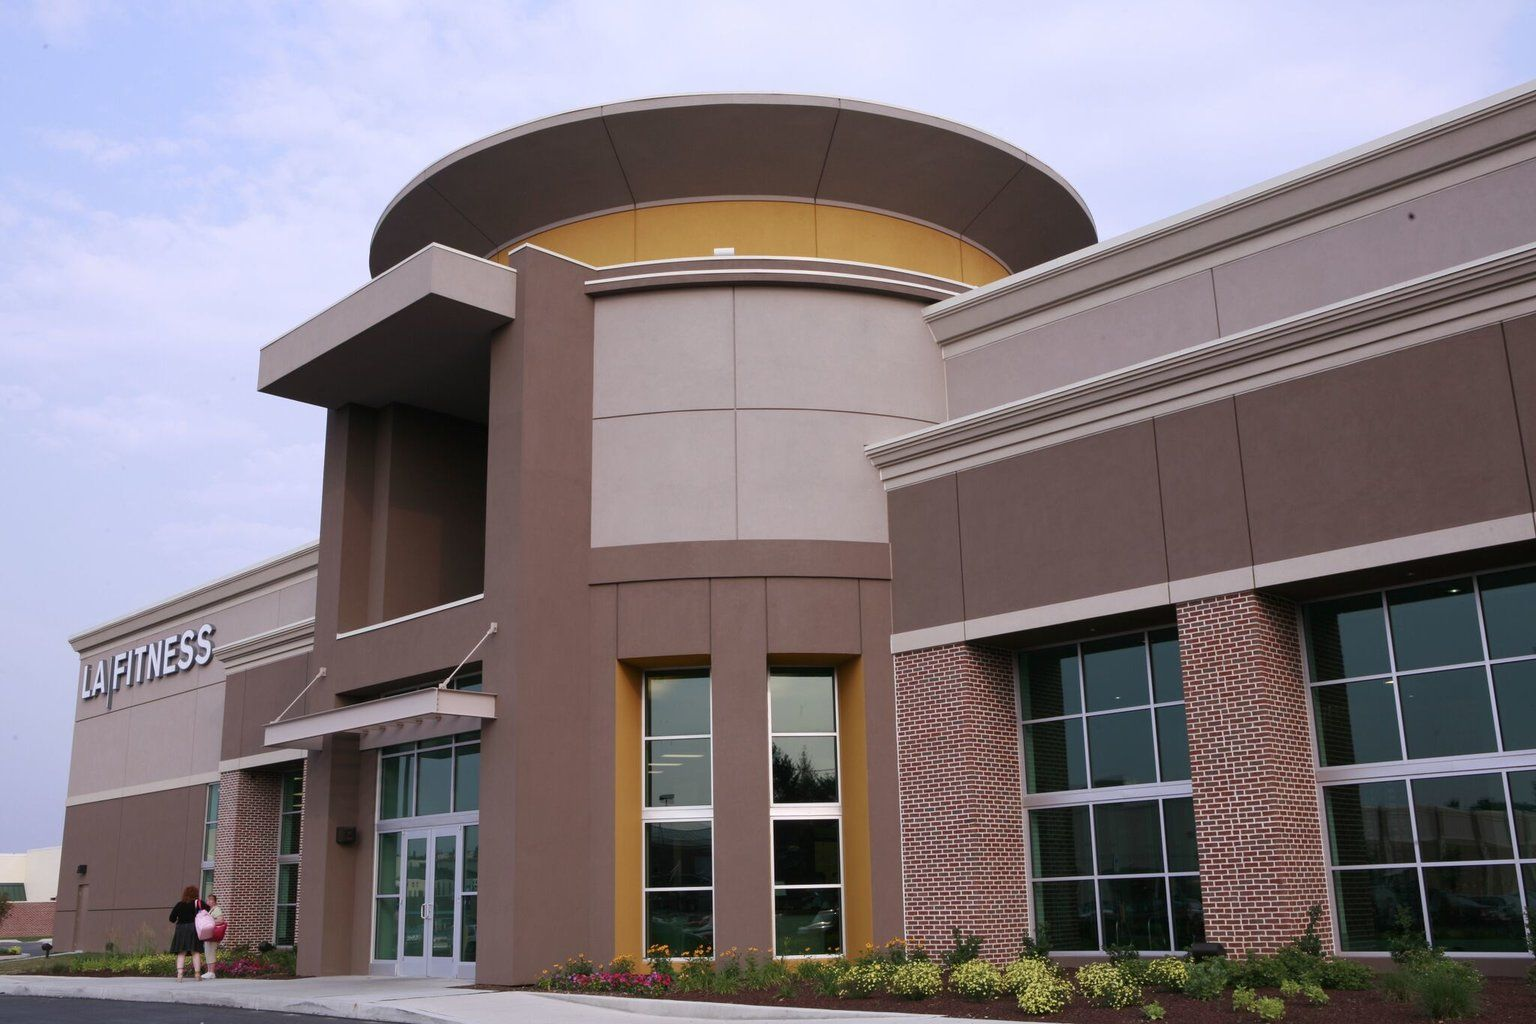 Pin By Ritchie On Eifs Building Structures Multi Story Building